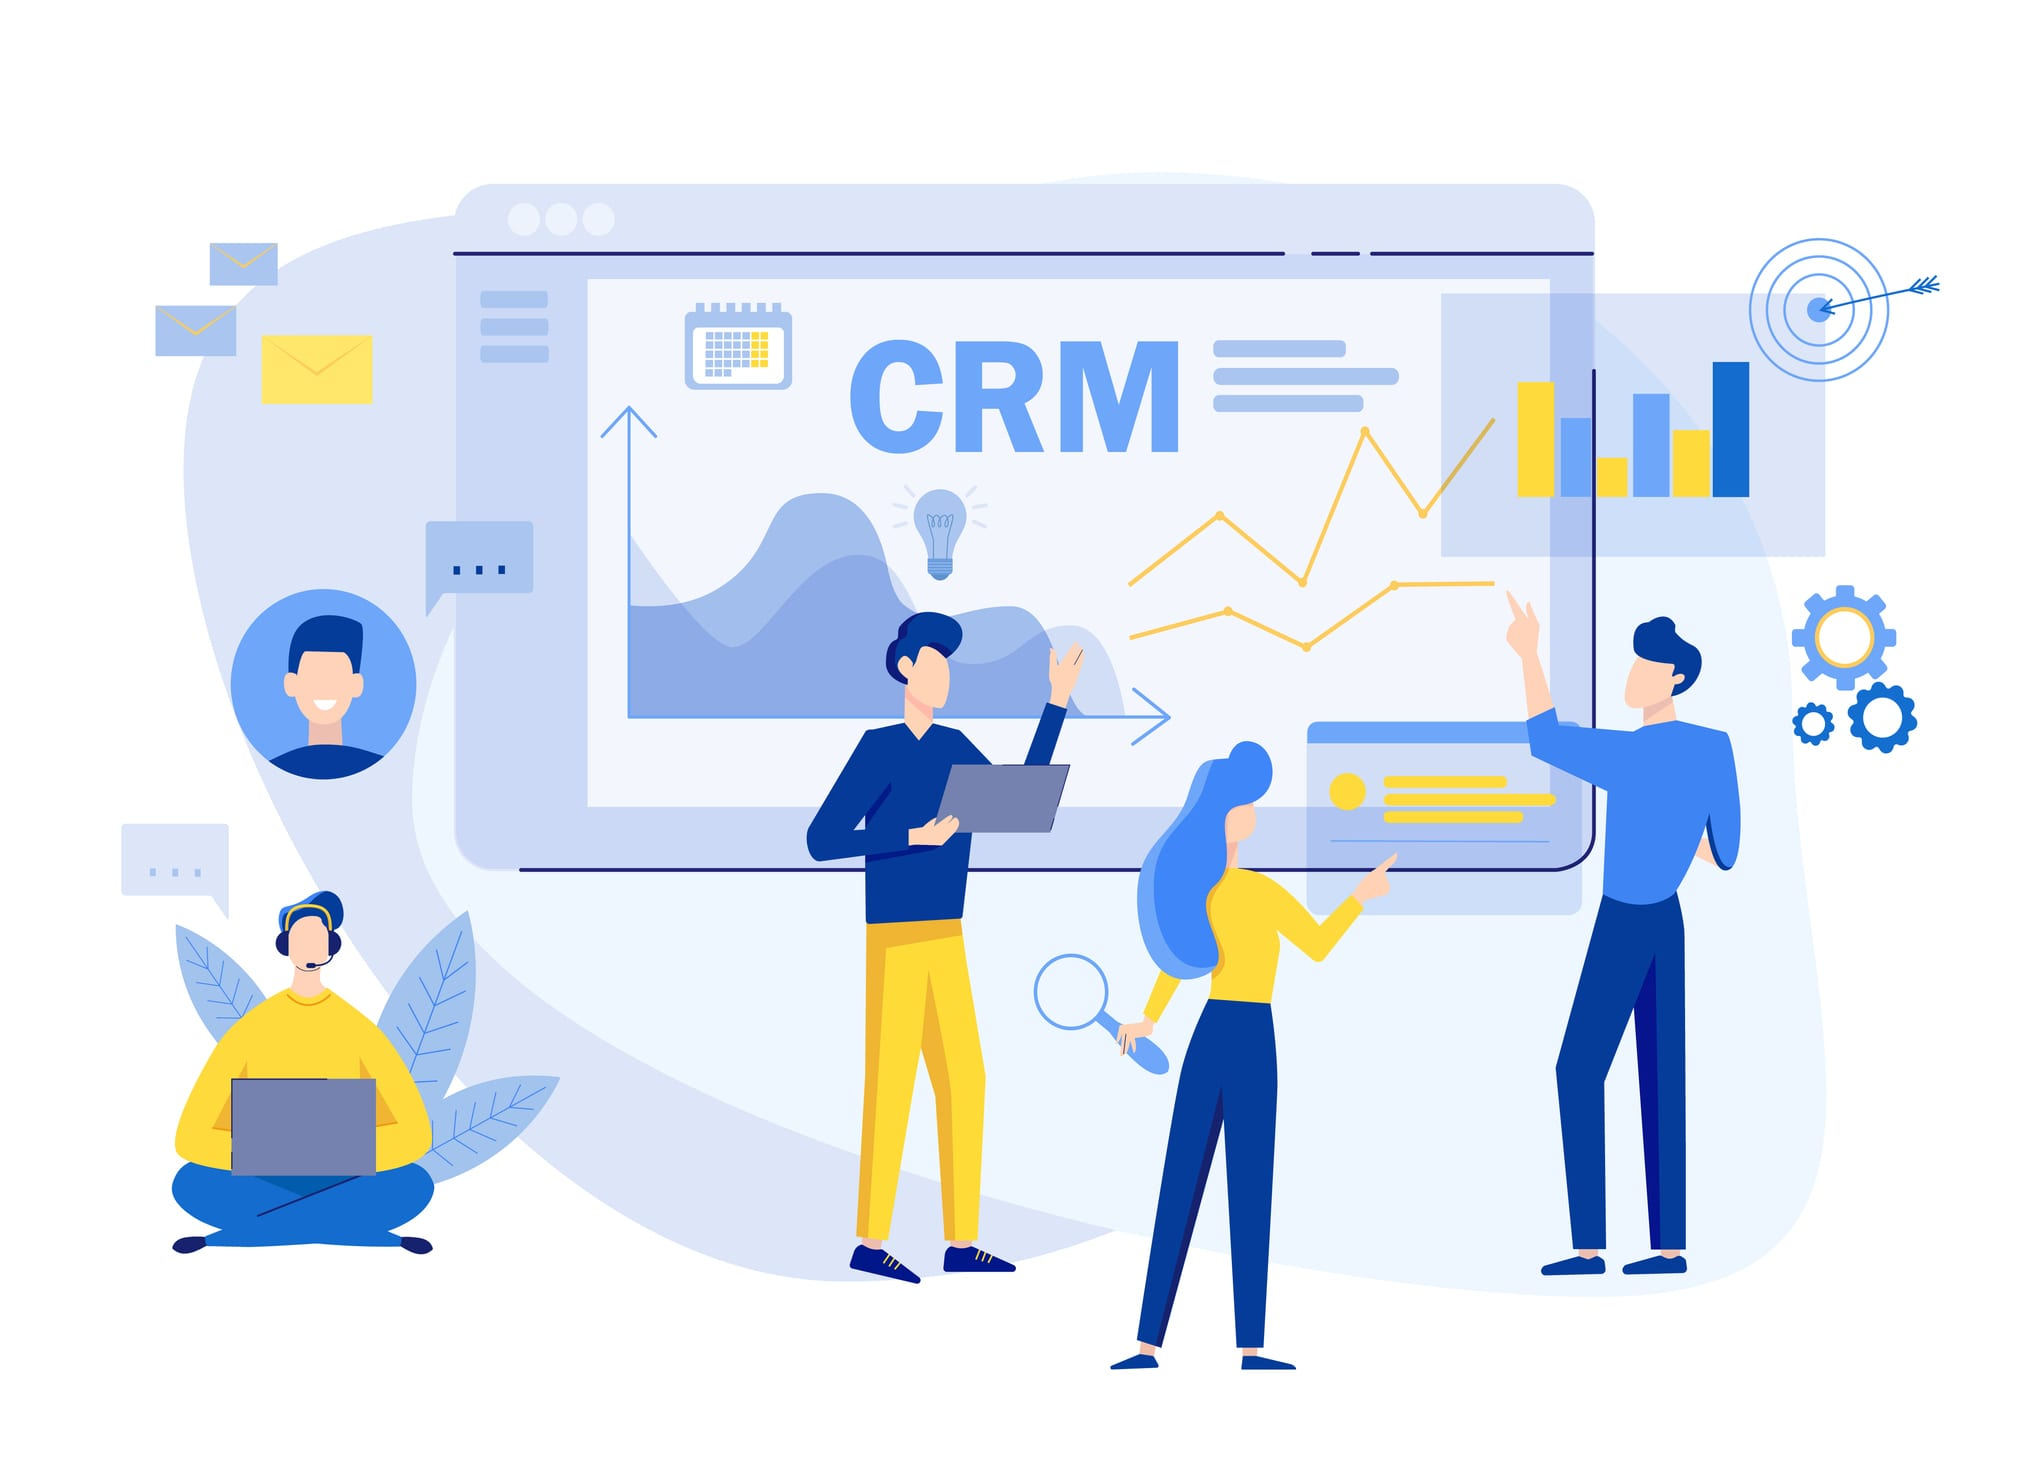 Customer relationship management concept background. CRM vector illustration. Company Strategy Planning. Business Data Analysis.